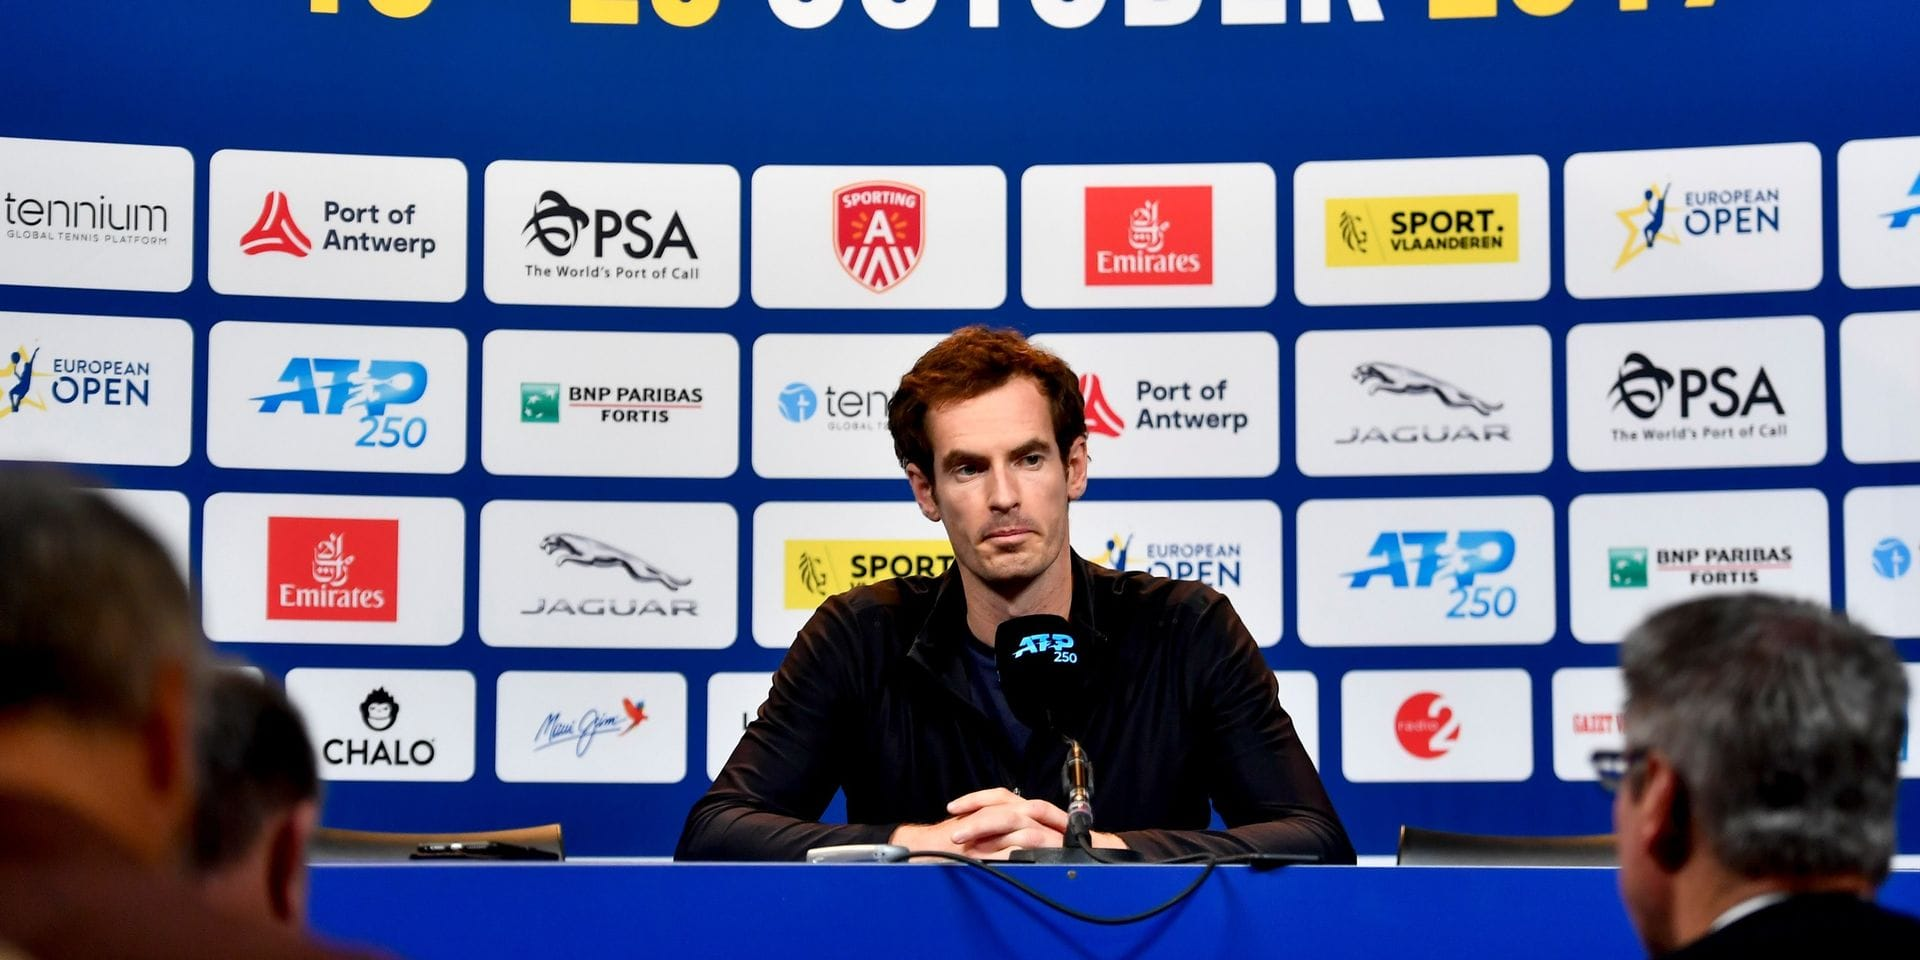 Van Herck, Clijsters ou Hoferlin: les confidences d'Andy Murray sur le tennis belge